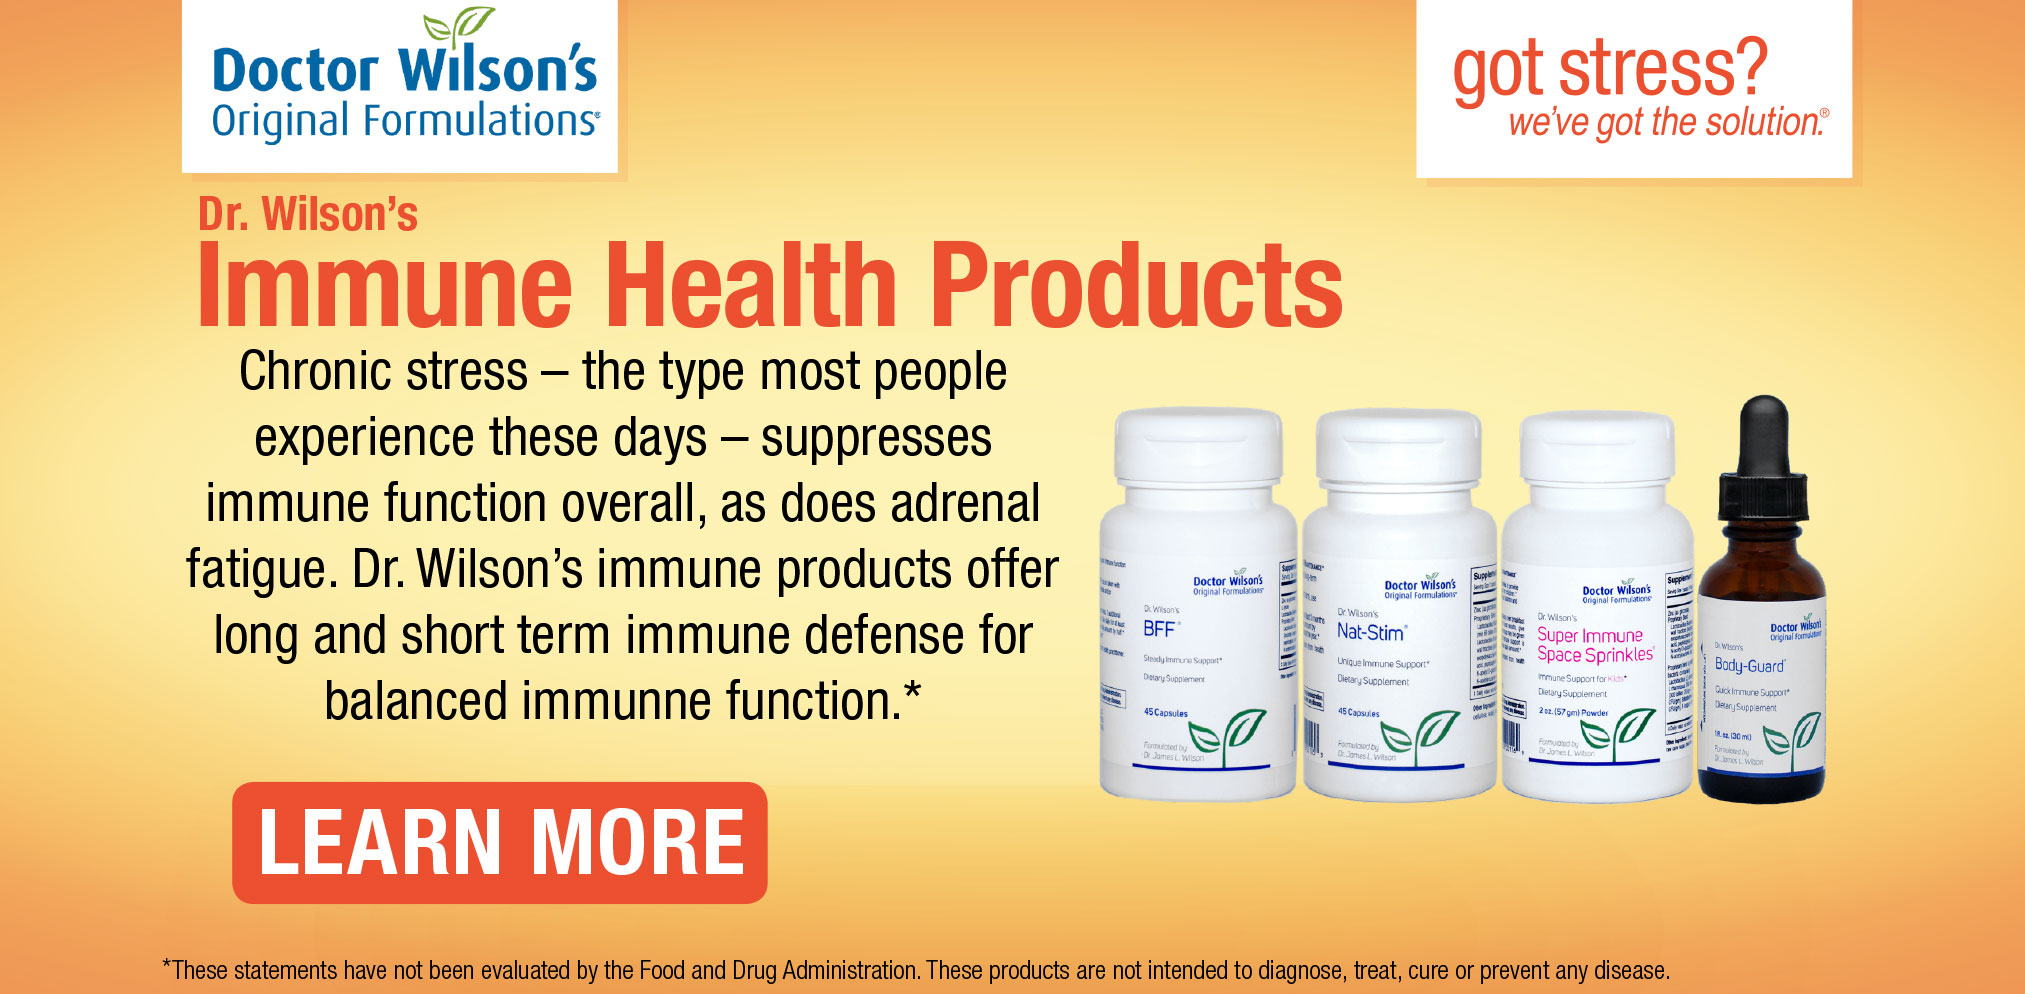 Immune Health Products